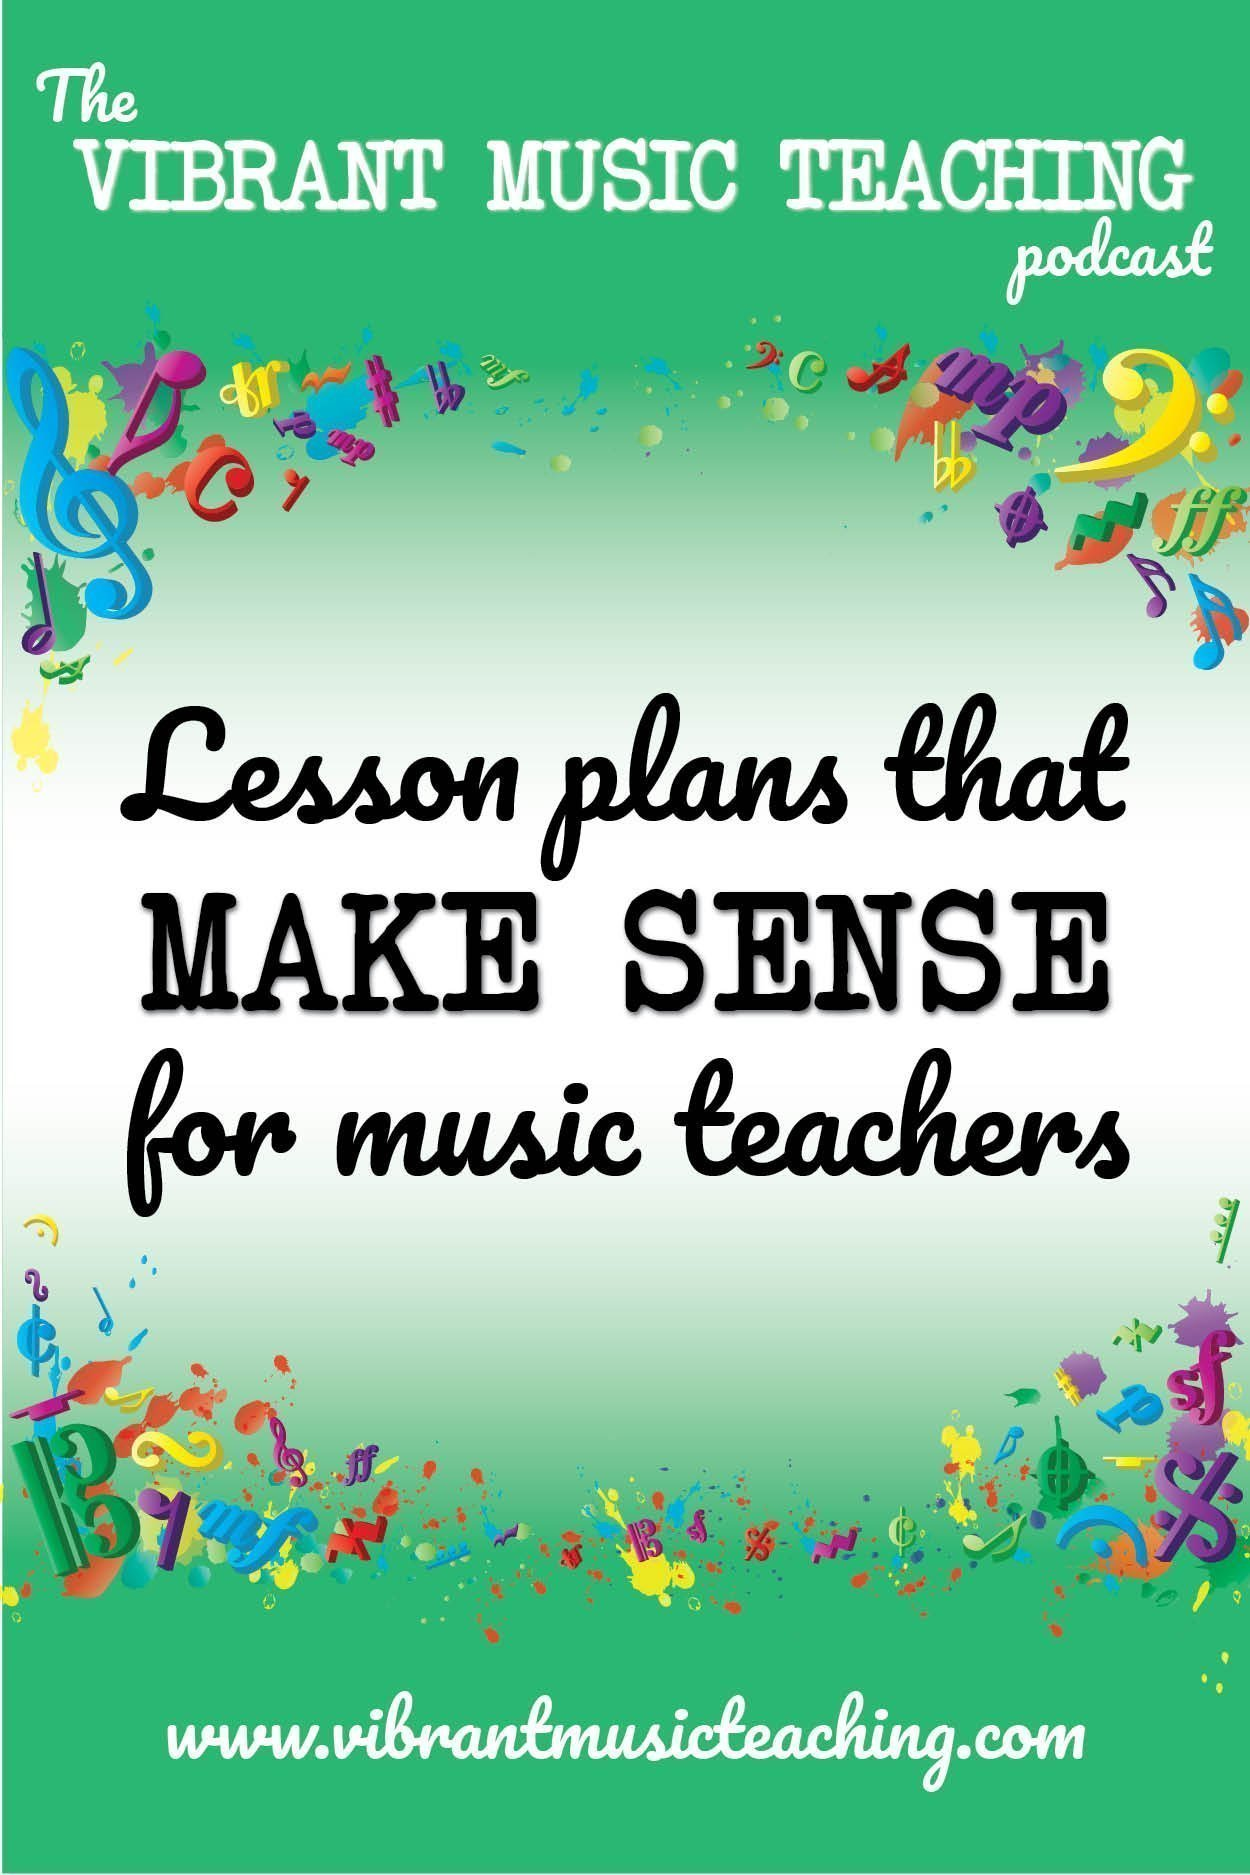 VMT 004 - Lesson plans that make sense for music teachers